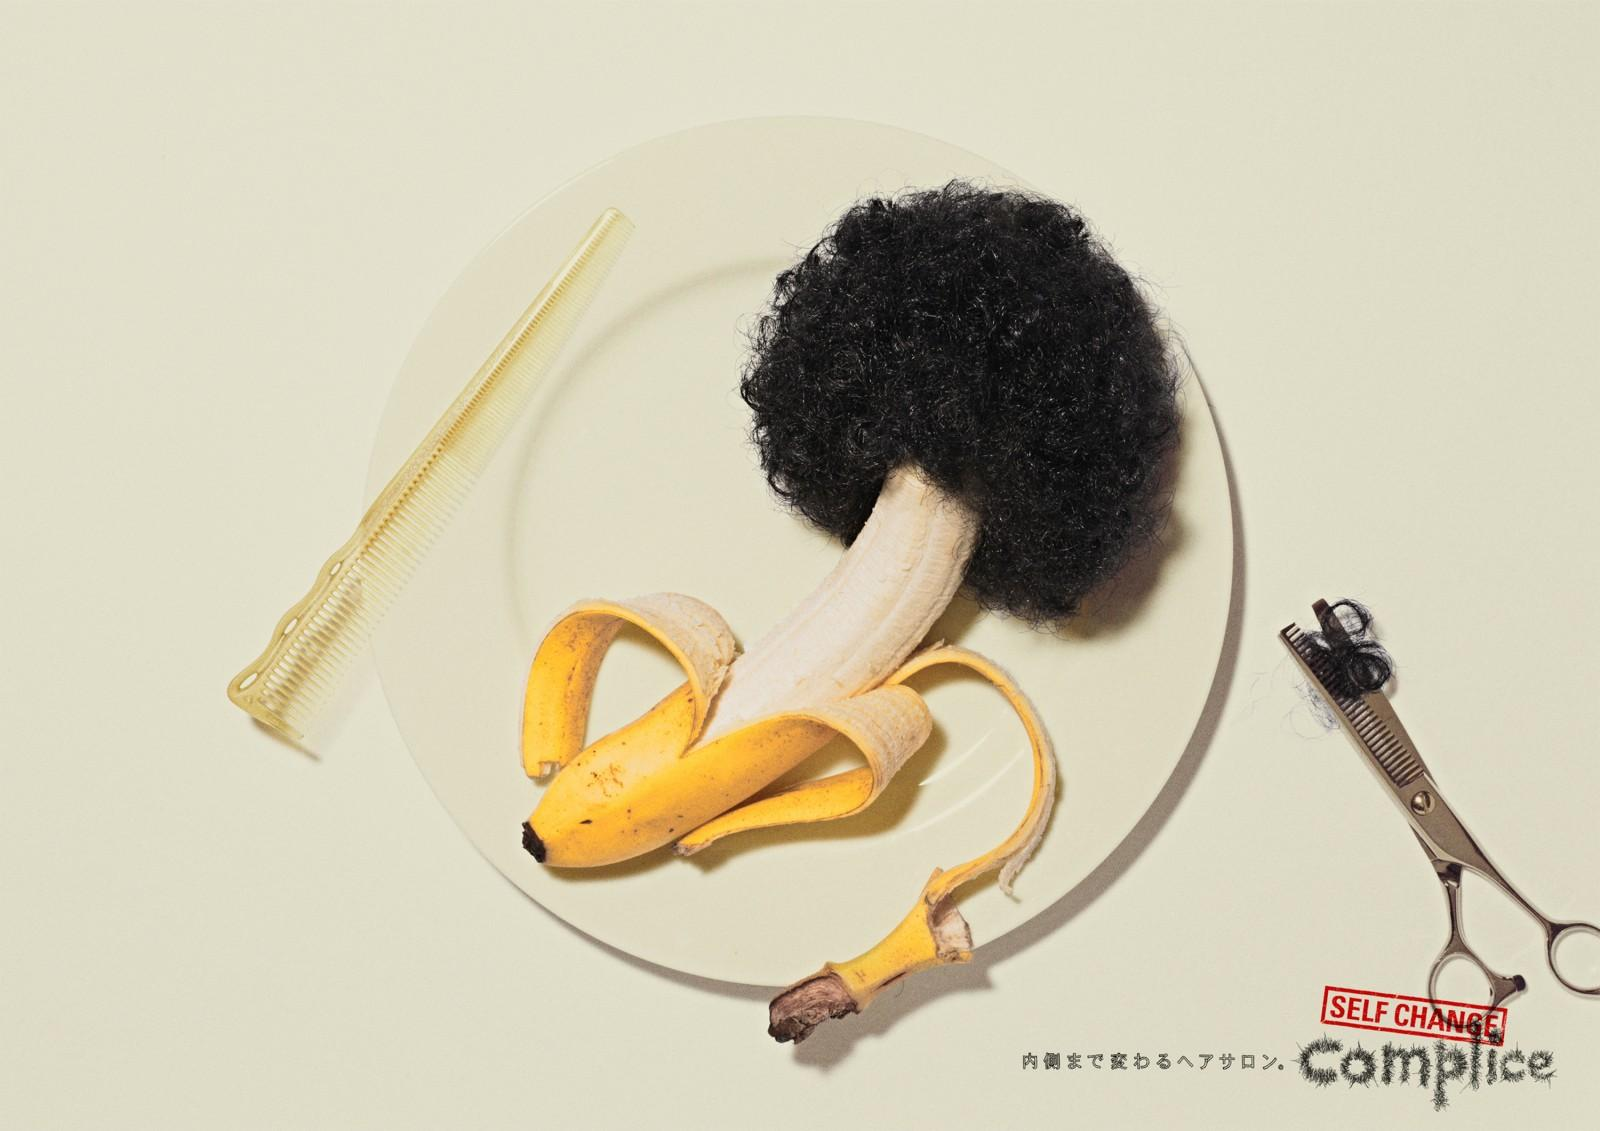 Complice Hair Salon Print Ad -  Banana